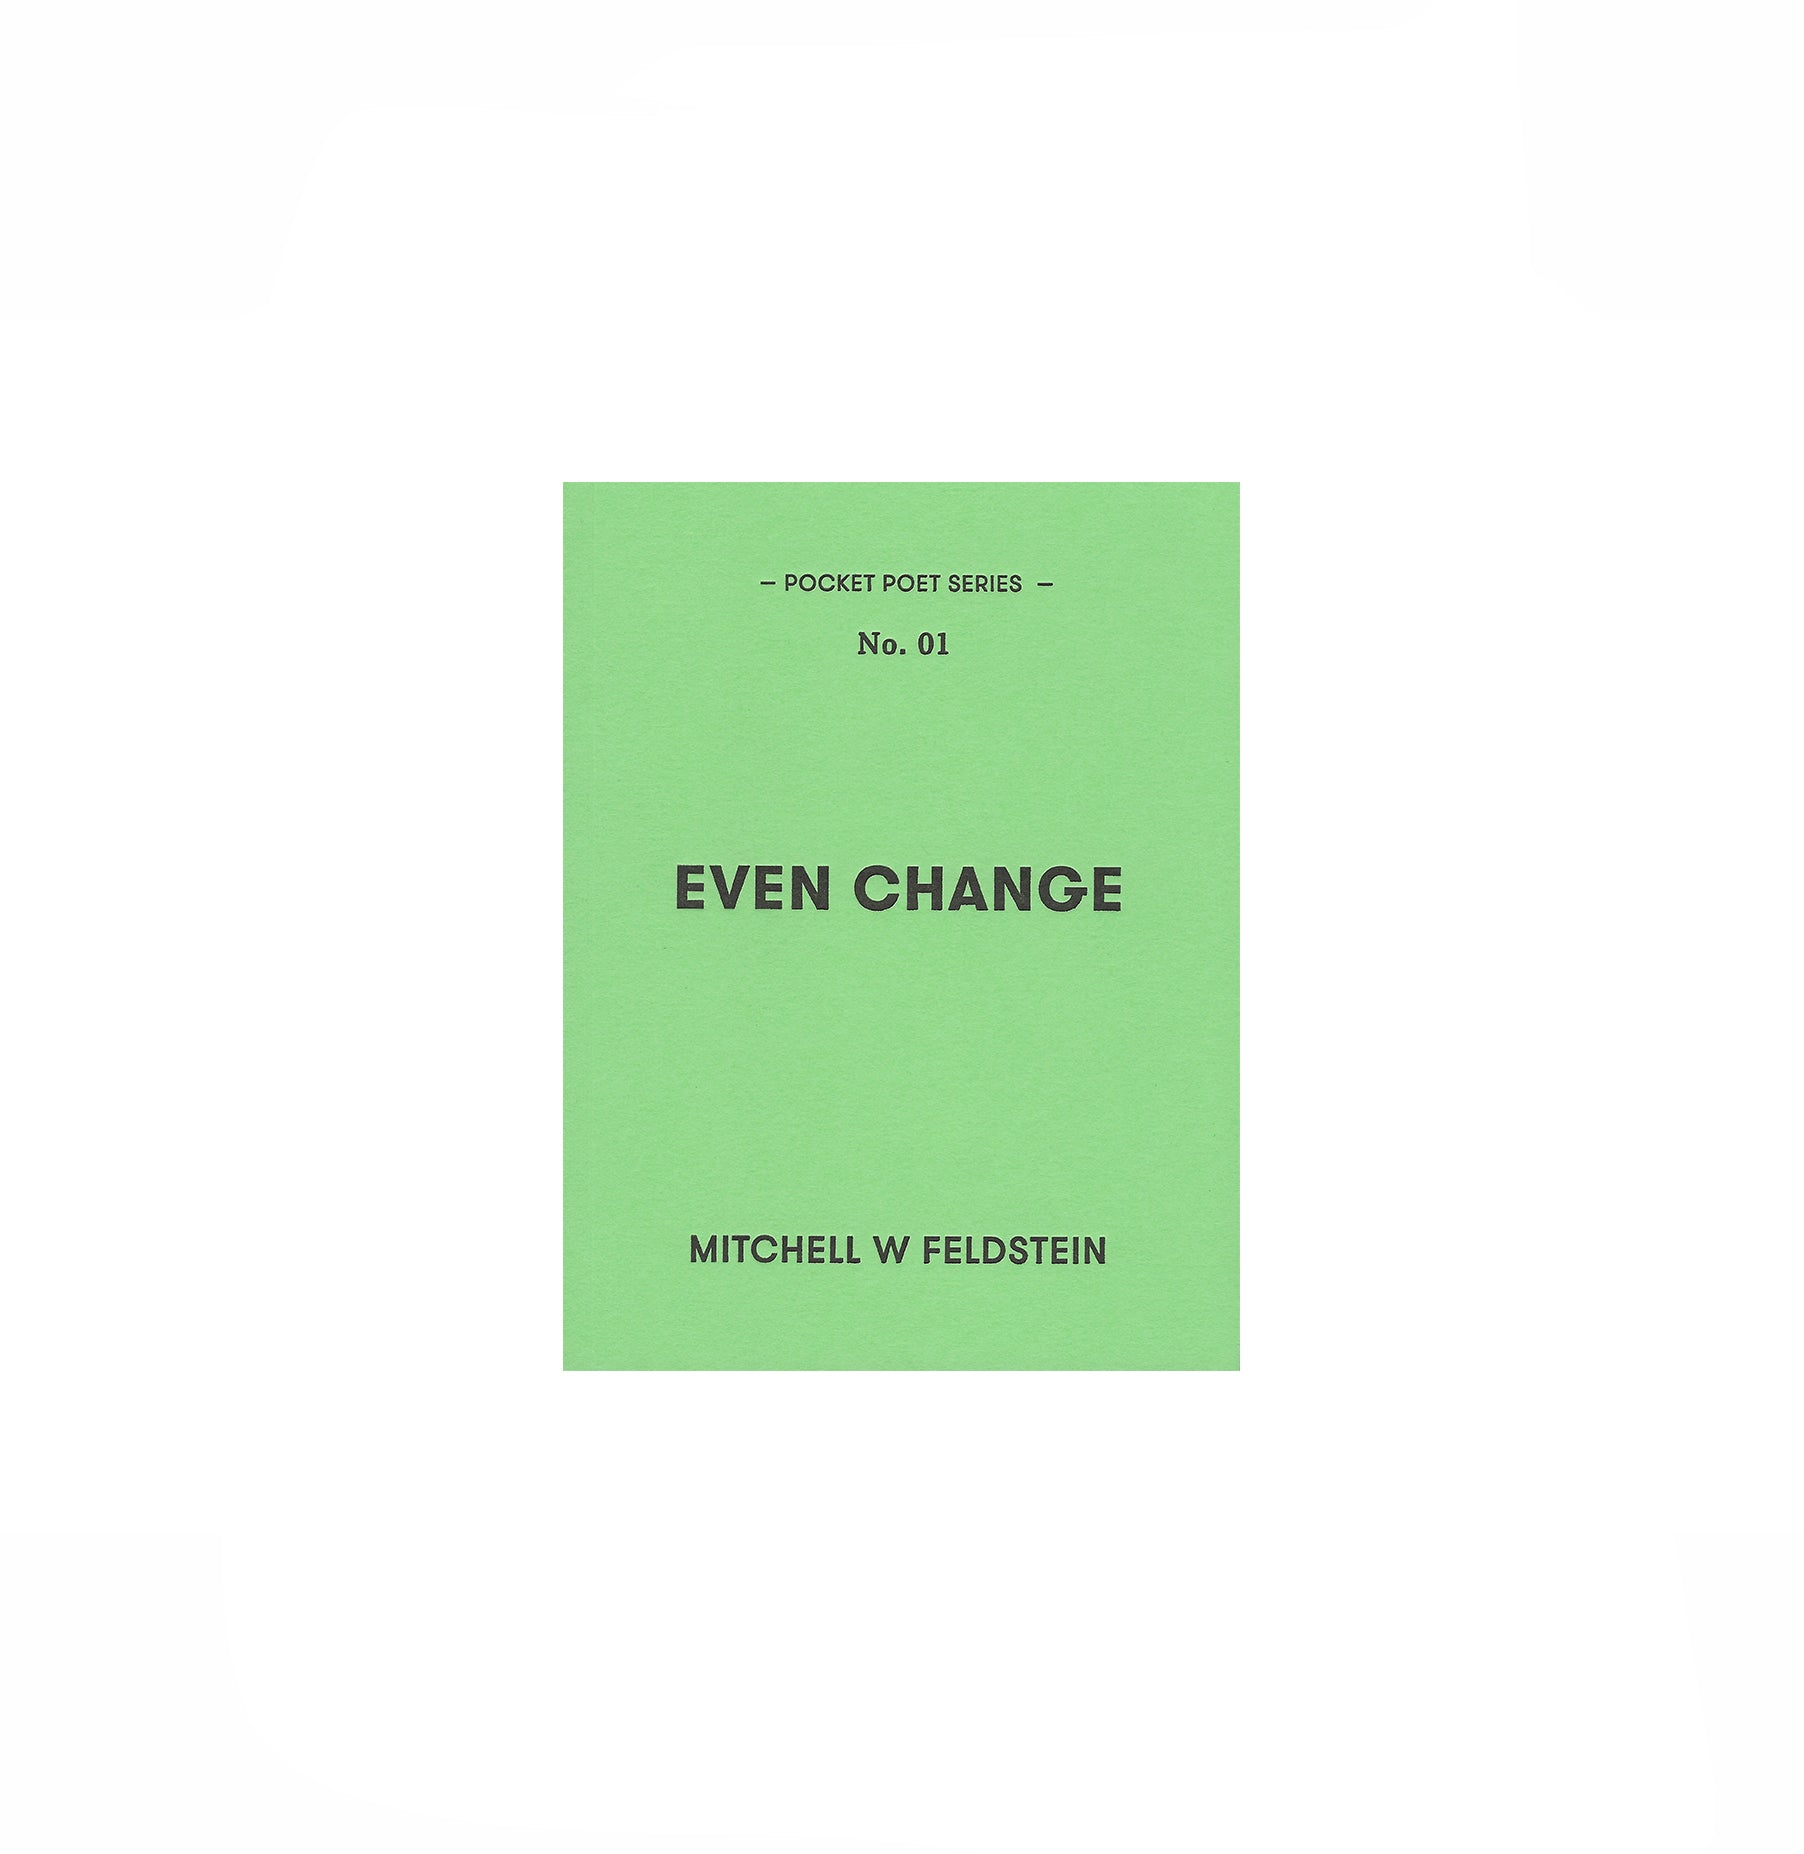 EVEN CHANGE, MITCHELL FELDSTEIN